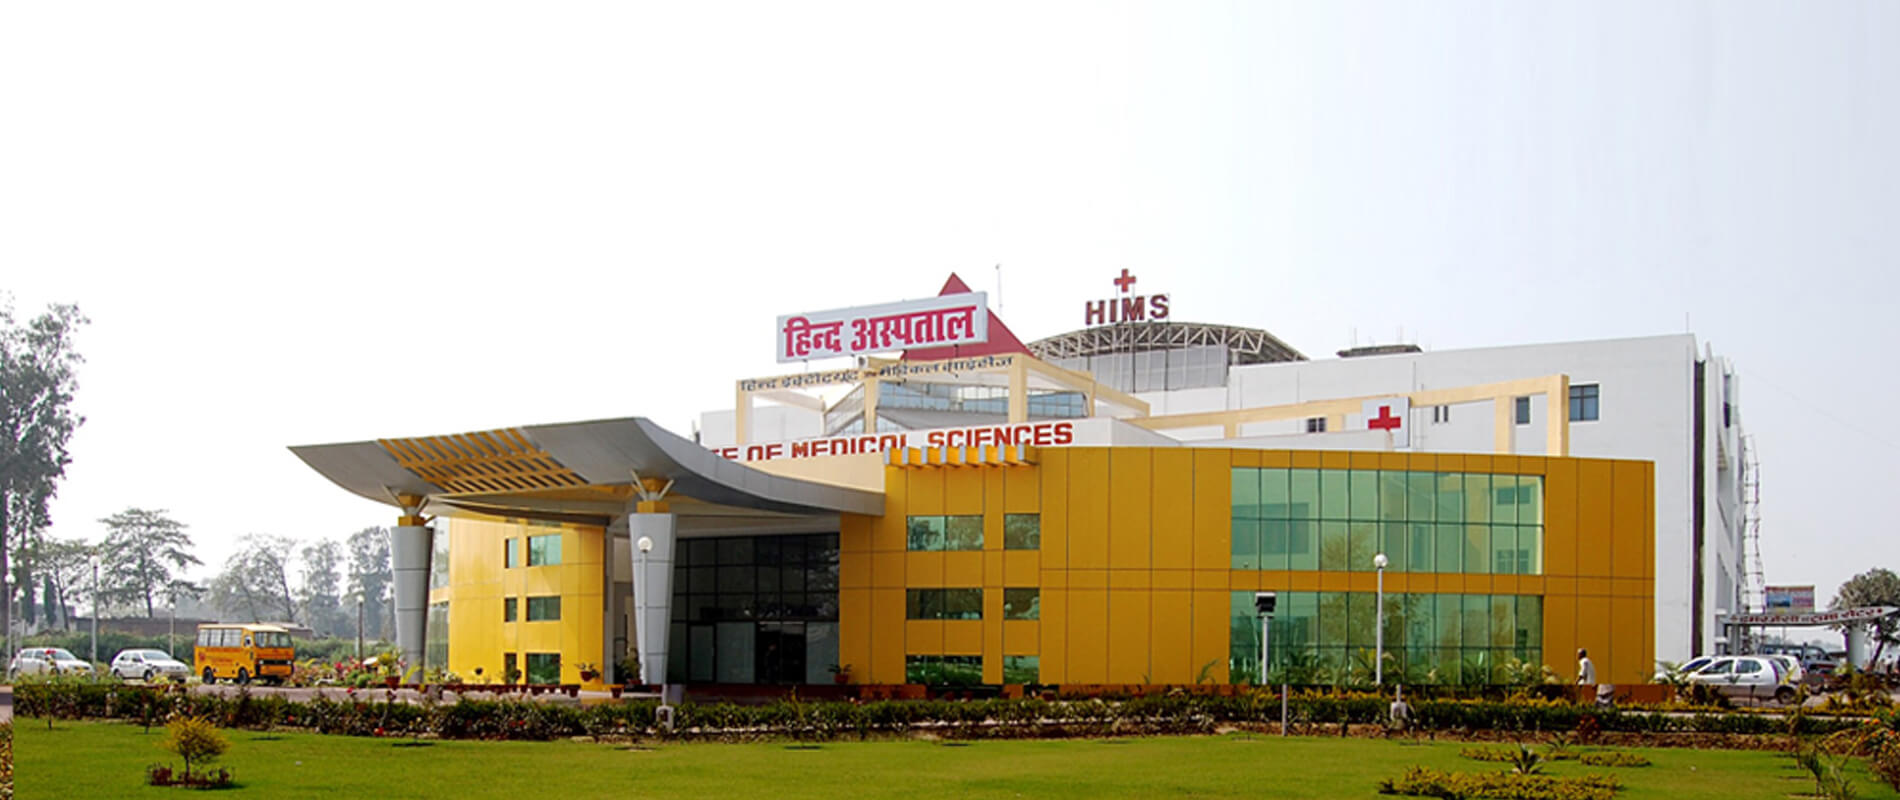 Top Medical College- Hind Institute | Proline Consultancy